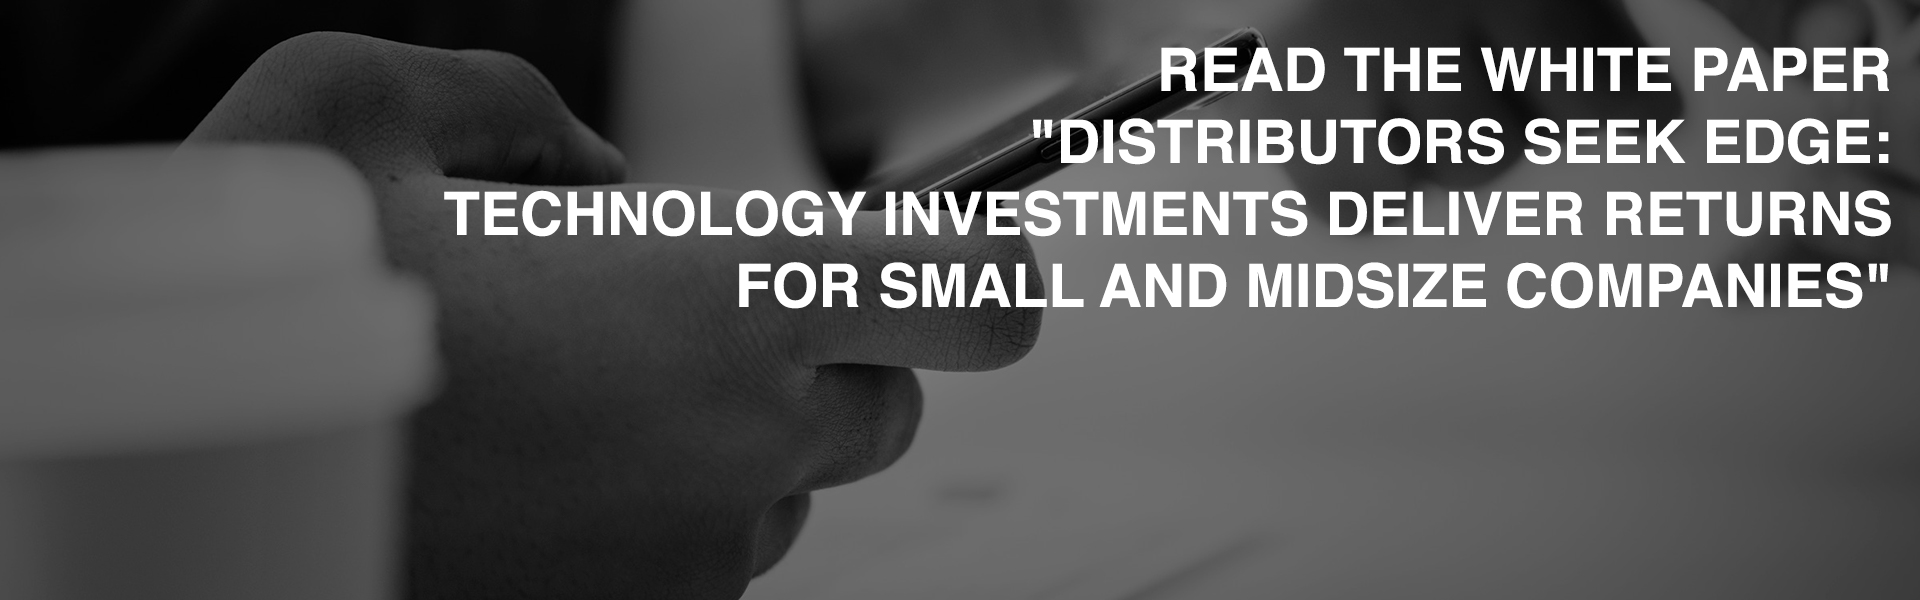 Technology Investment for SMBs